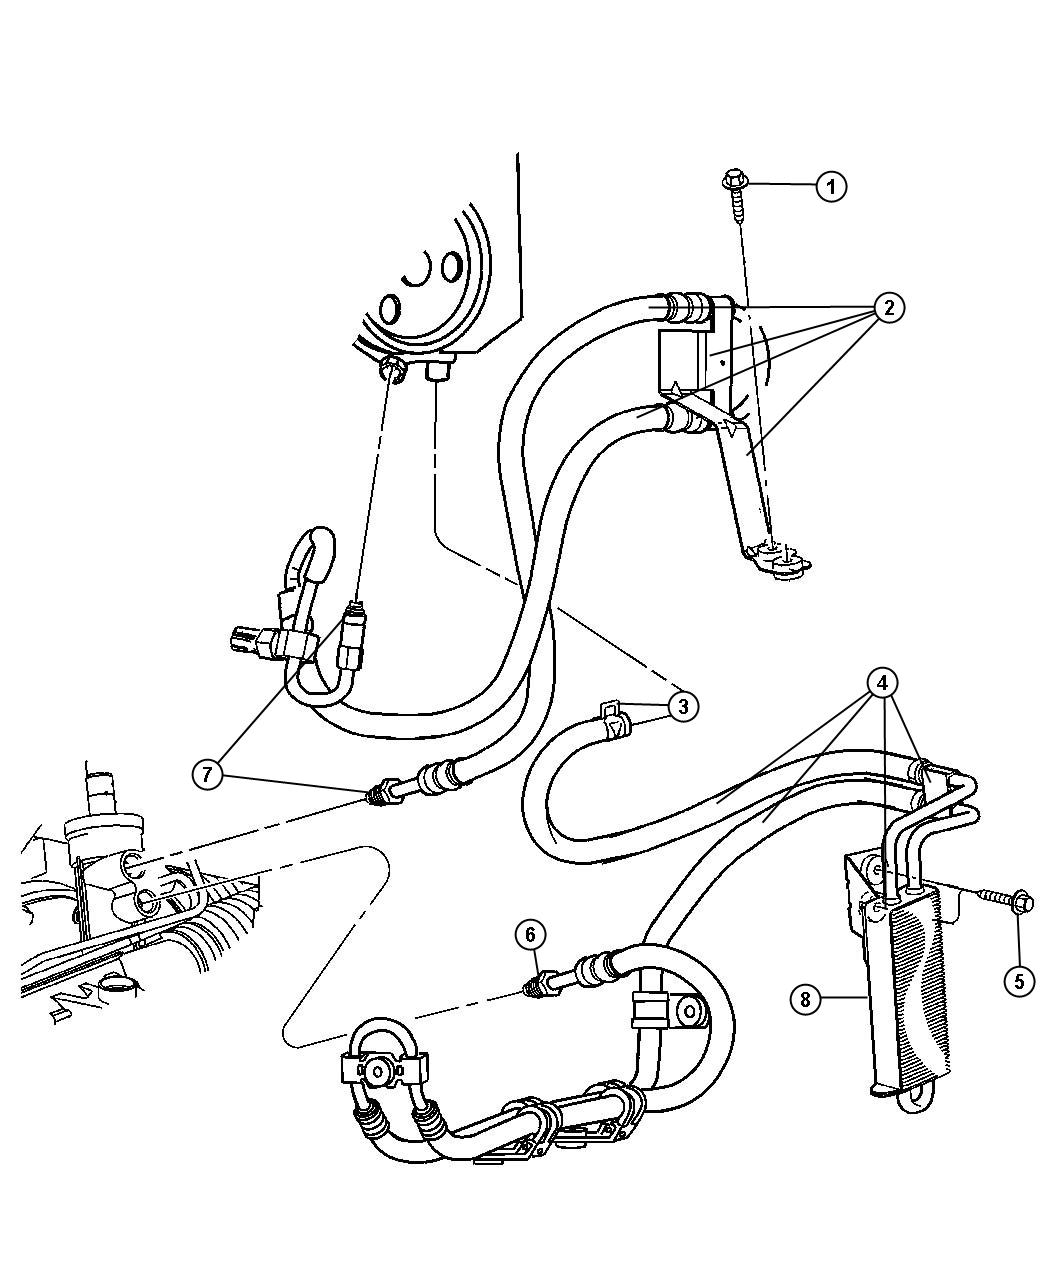 Jeep Liberty Used for: HOSE AND COOLER. Power Steering